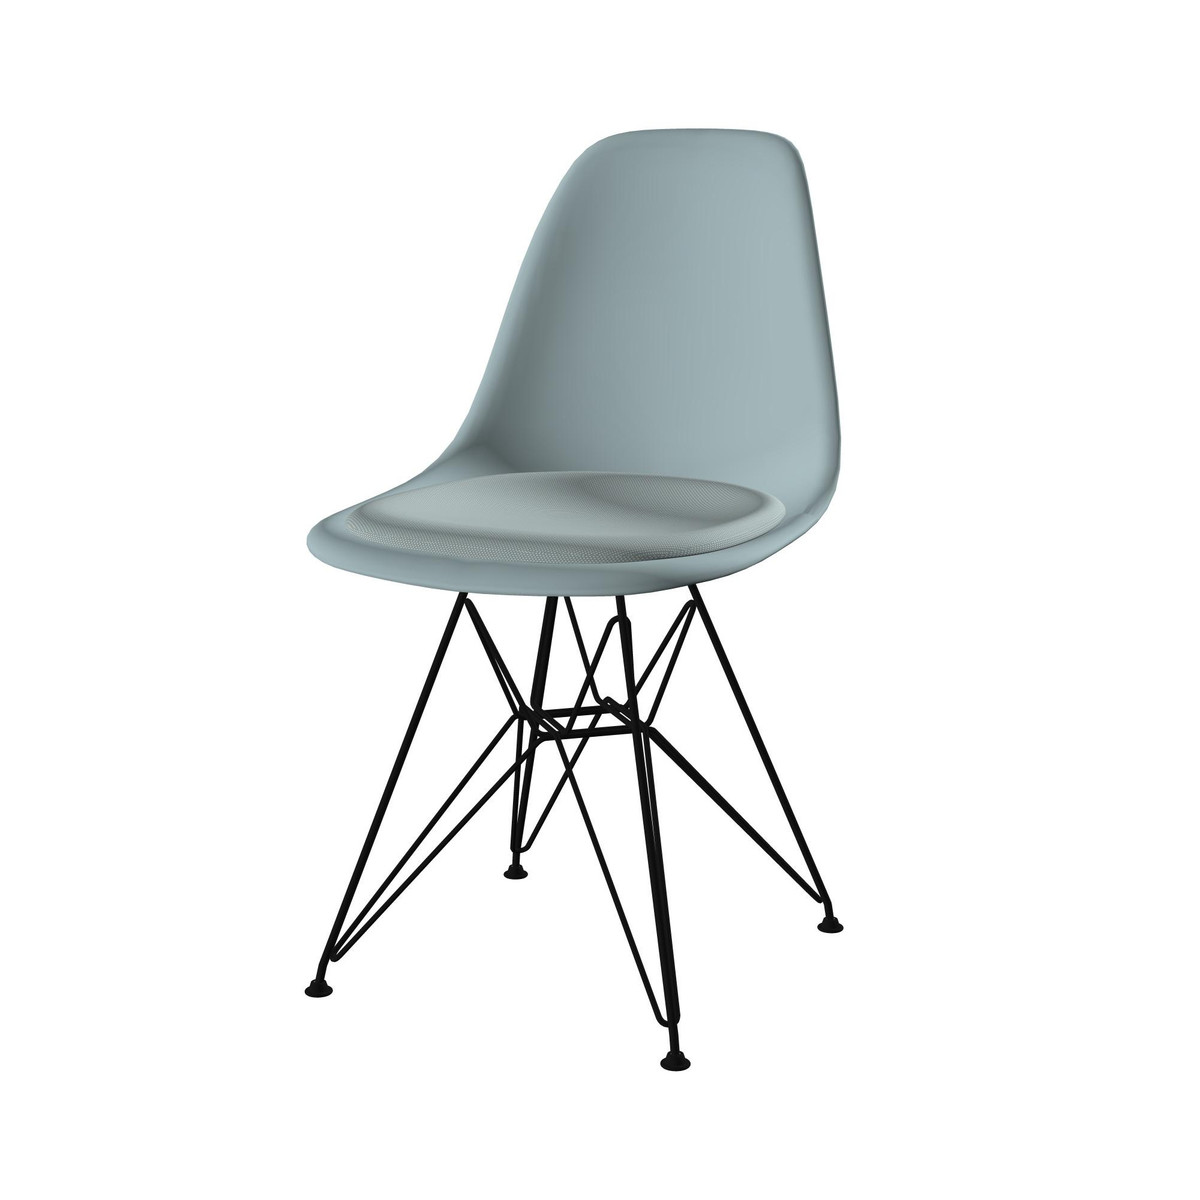 eames plastic side chair dsr stuhl gepolstert vitra. Black Bedroom Furniture Sets. Home Design Ideas